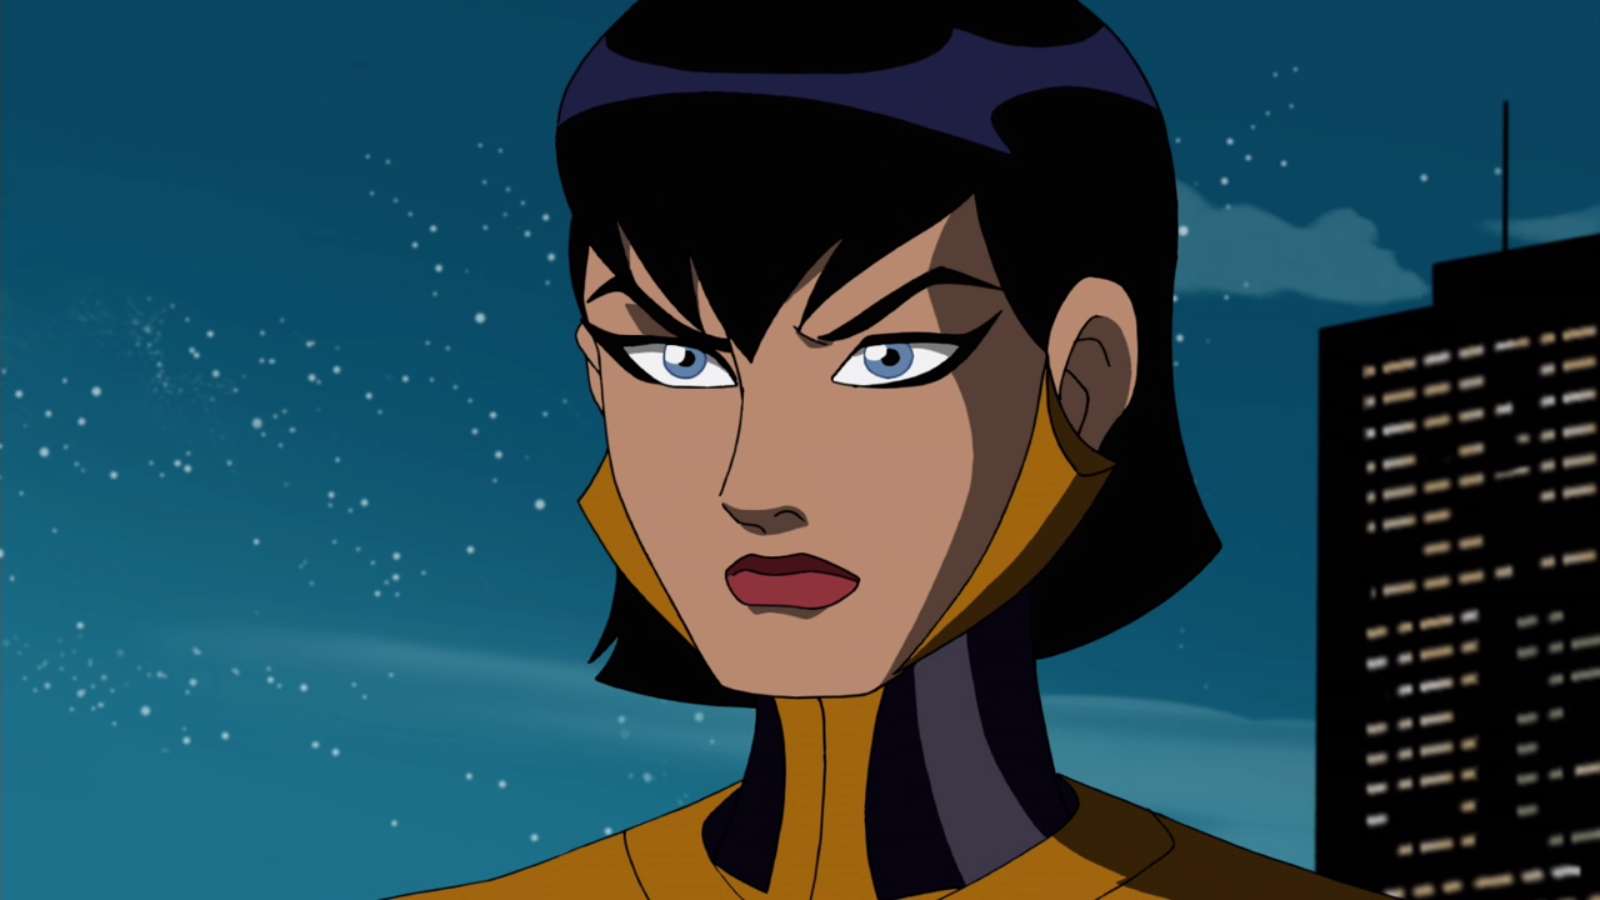 Quake (The Avengers: Earth's Mightiest Heroes)